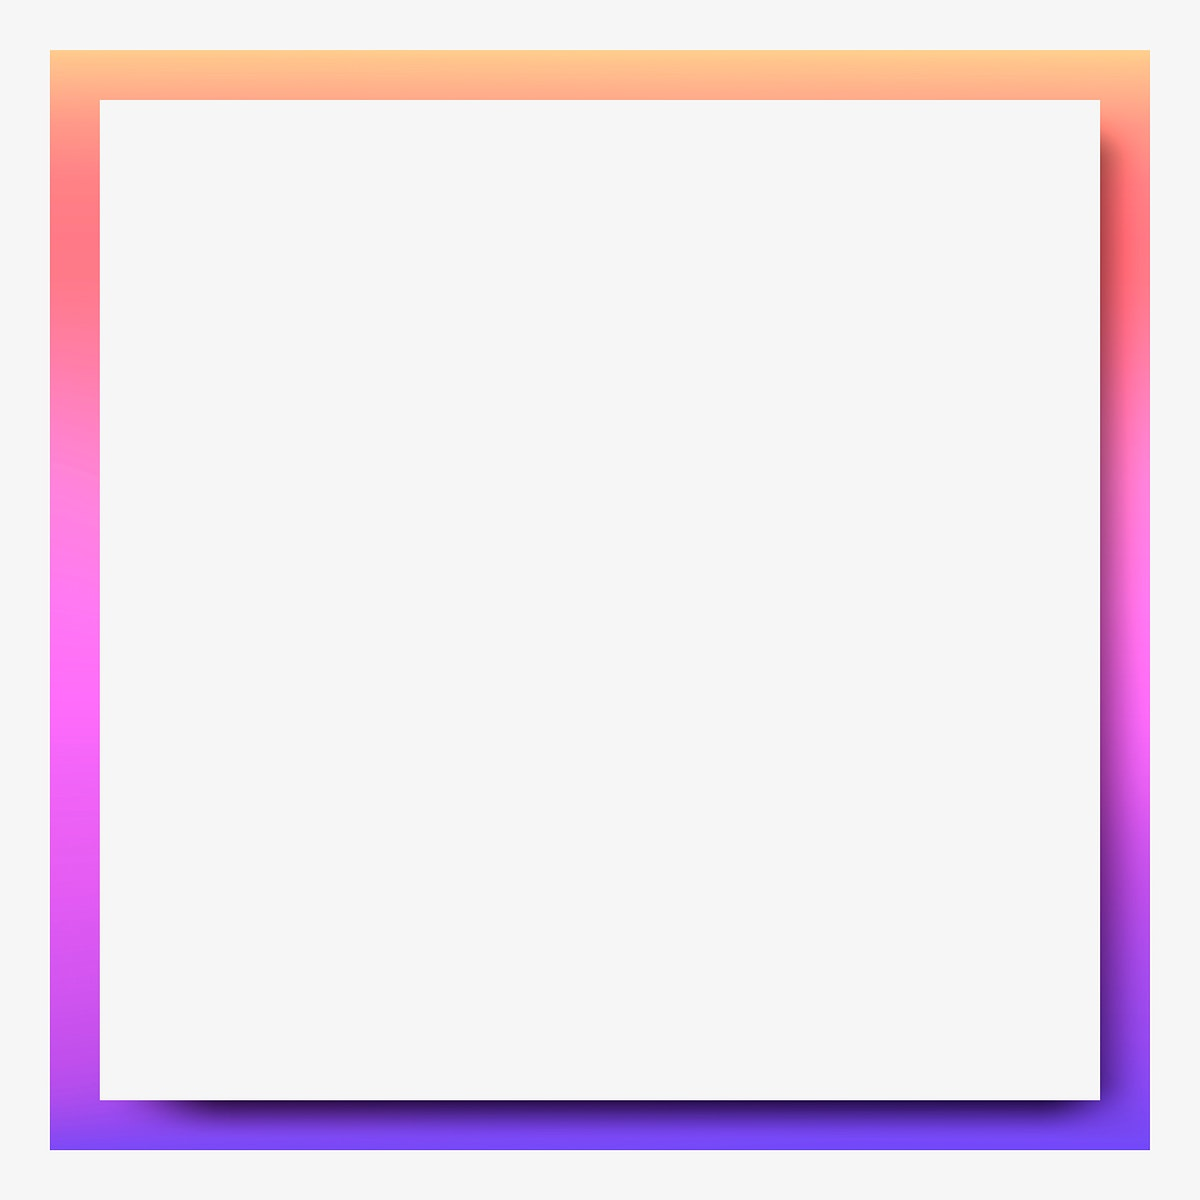 Pink and orange holographic pattern frame background vector